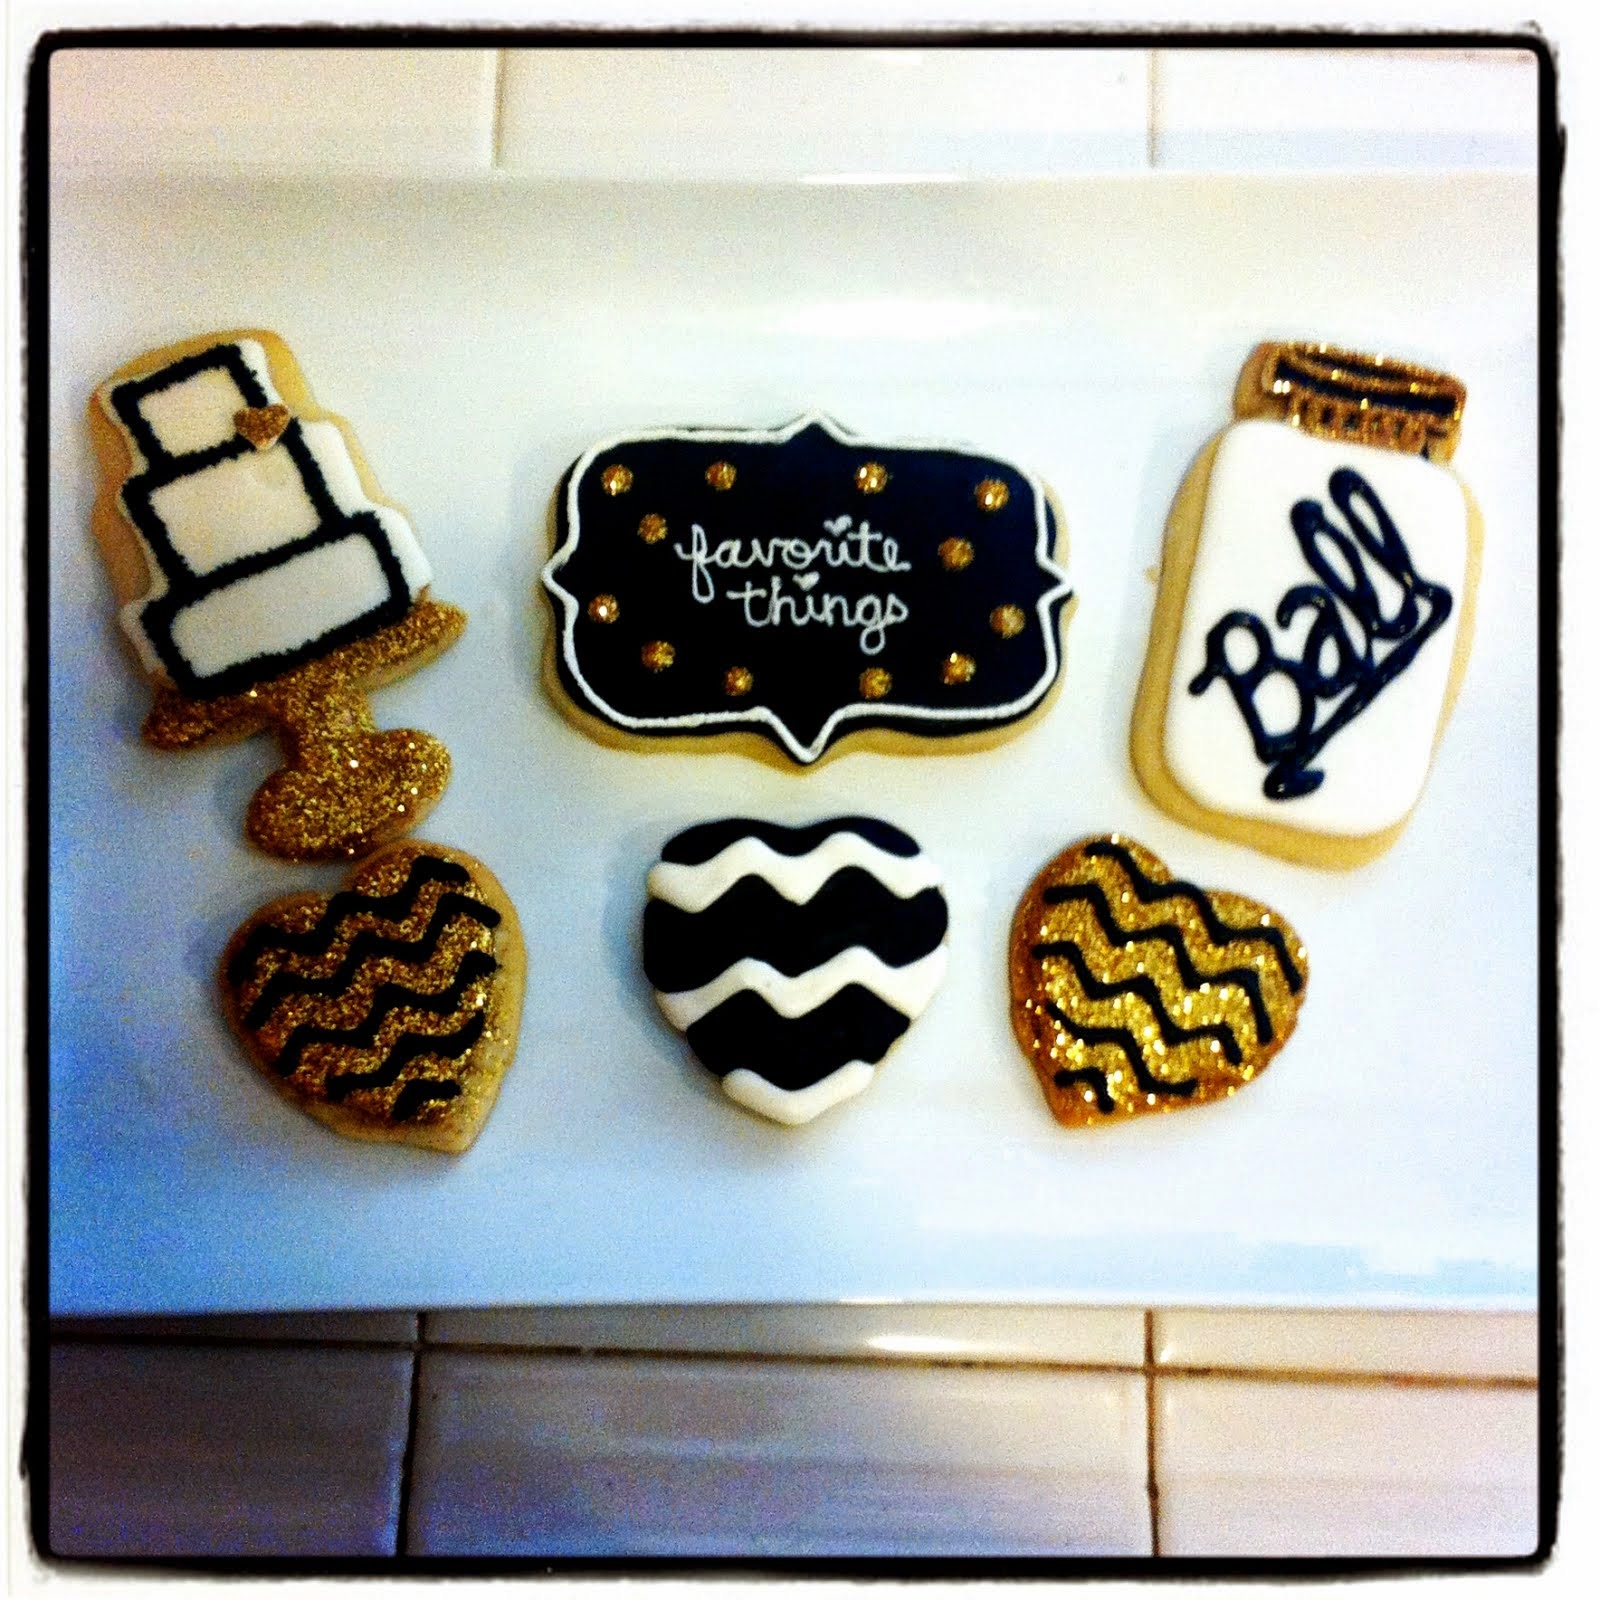 CHEVRON FAVORITE THINGS COOKIES